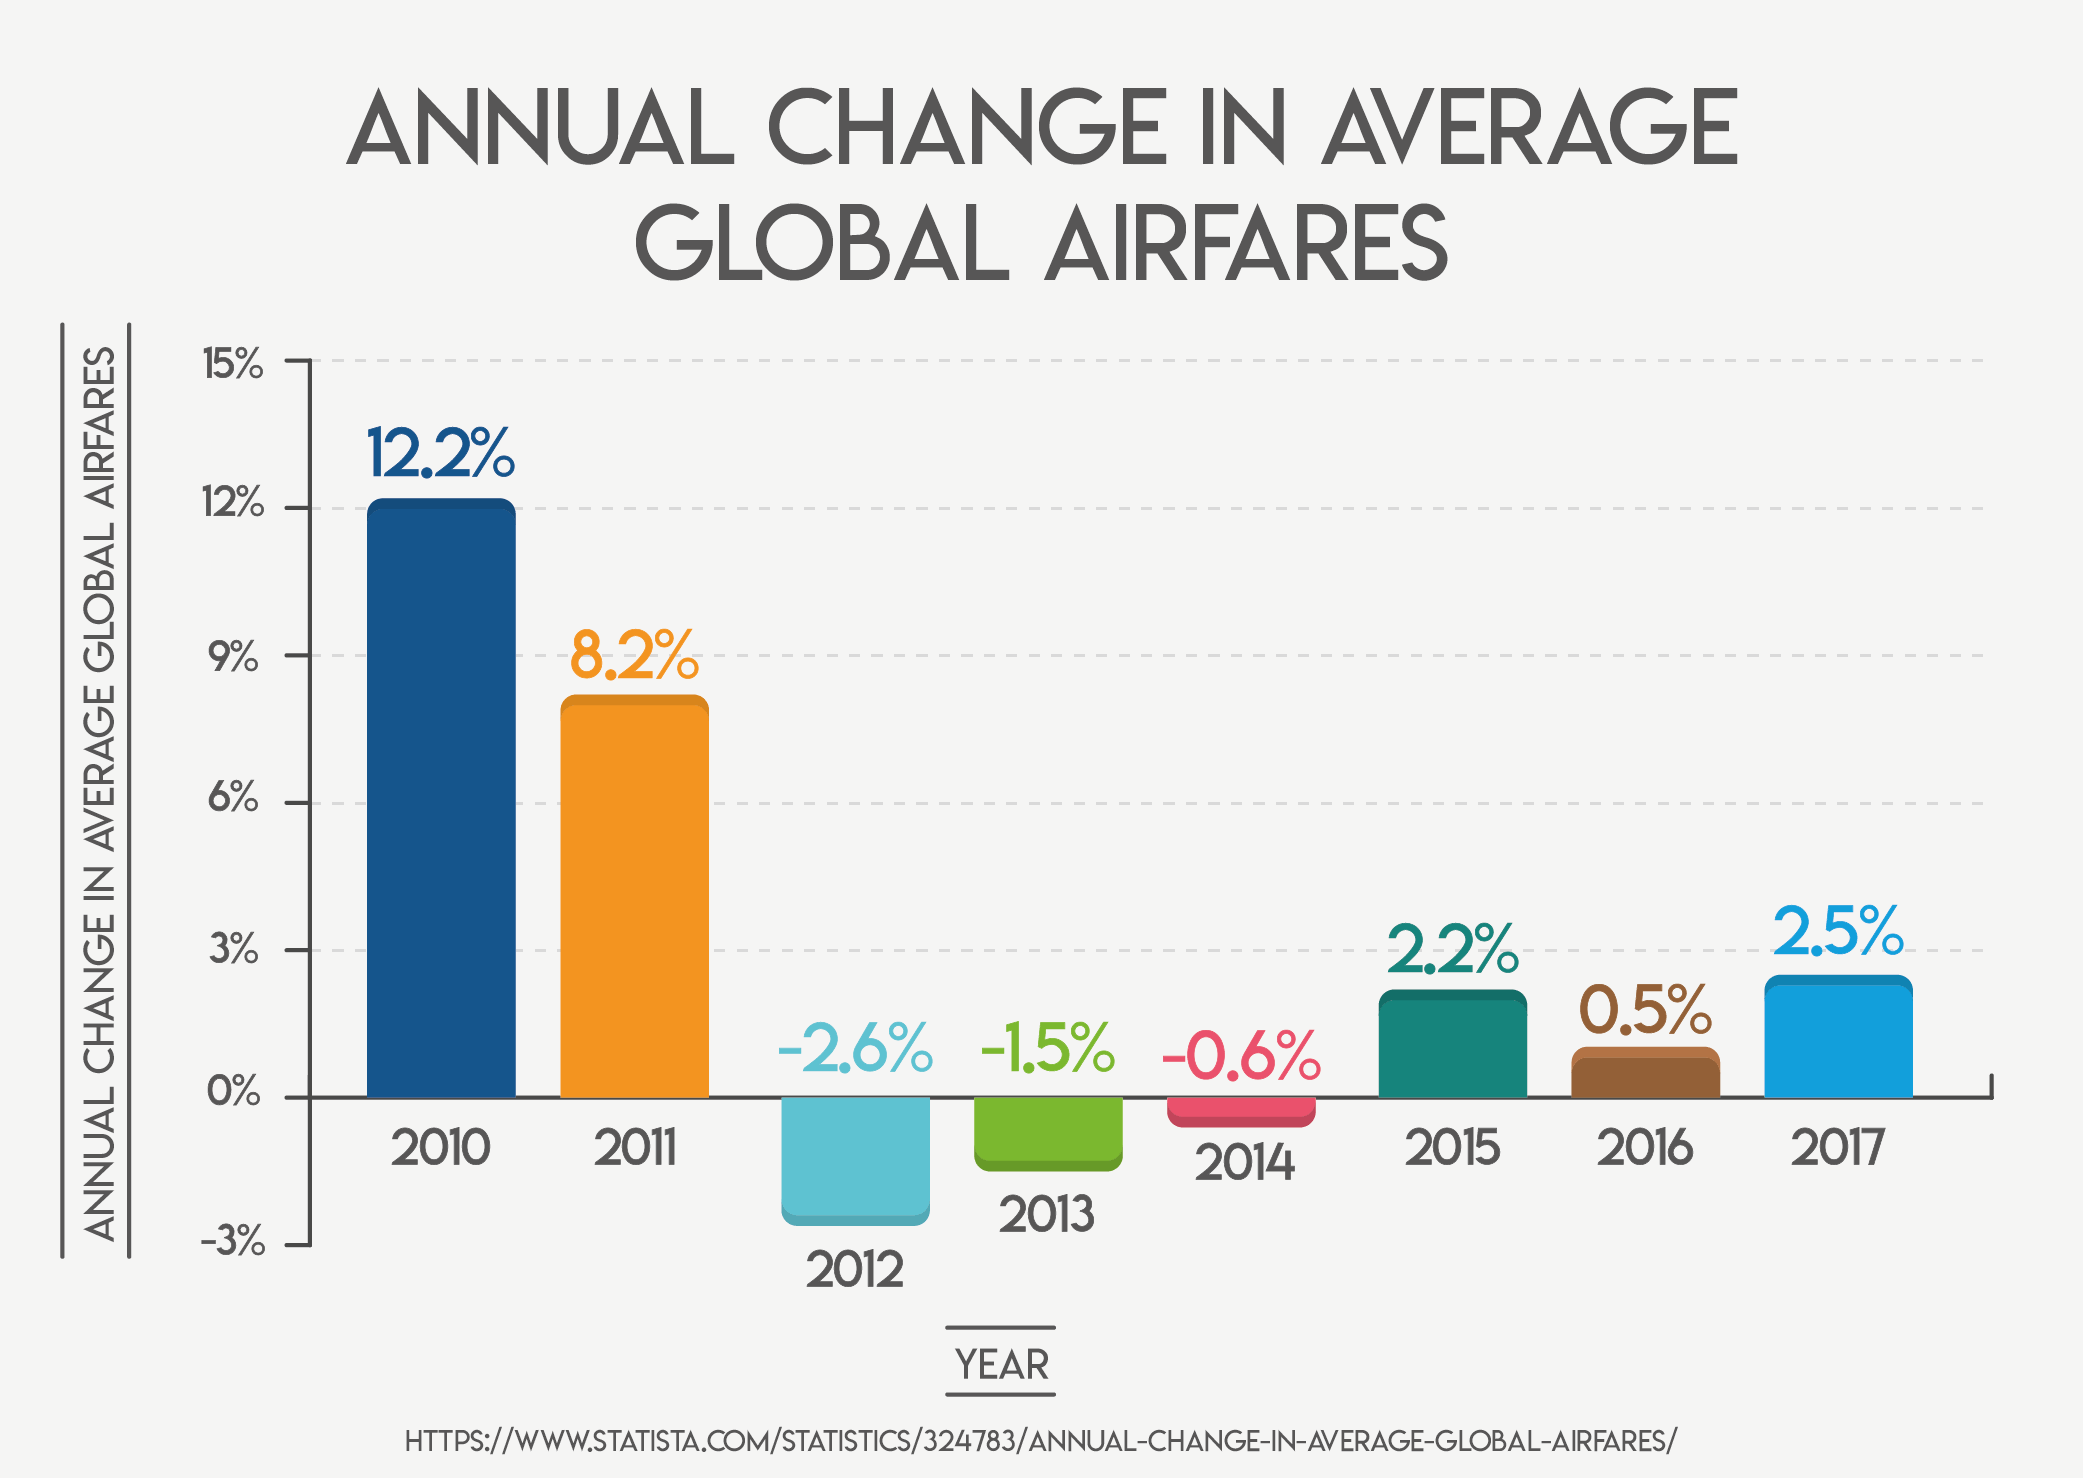 Annual Change In Average Global Airfares